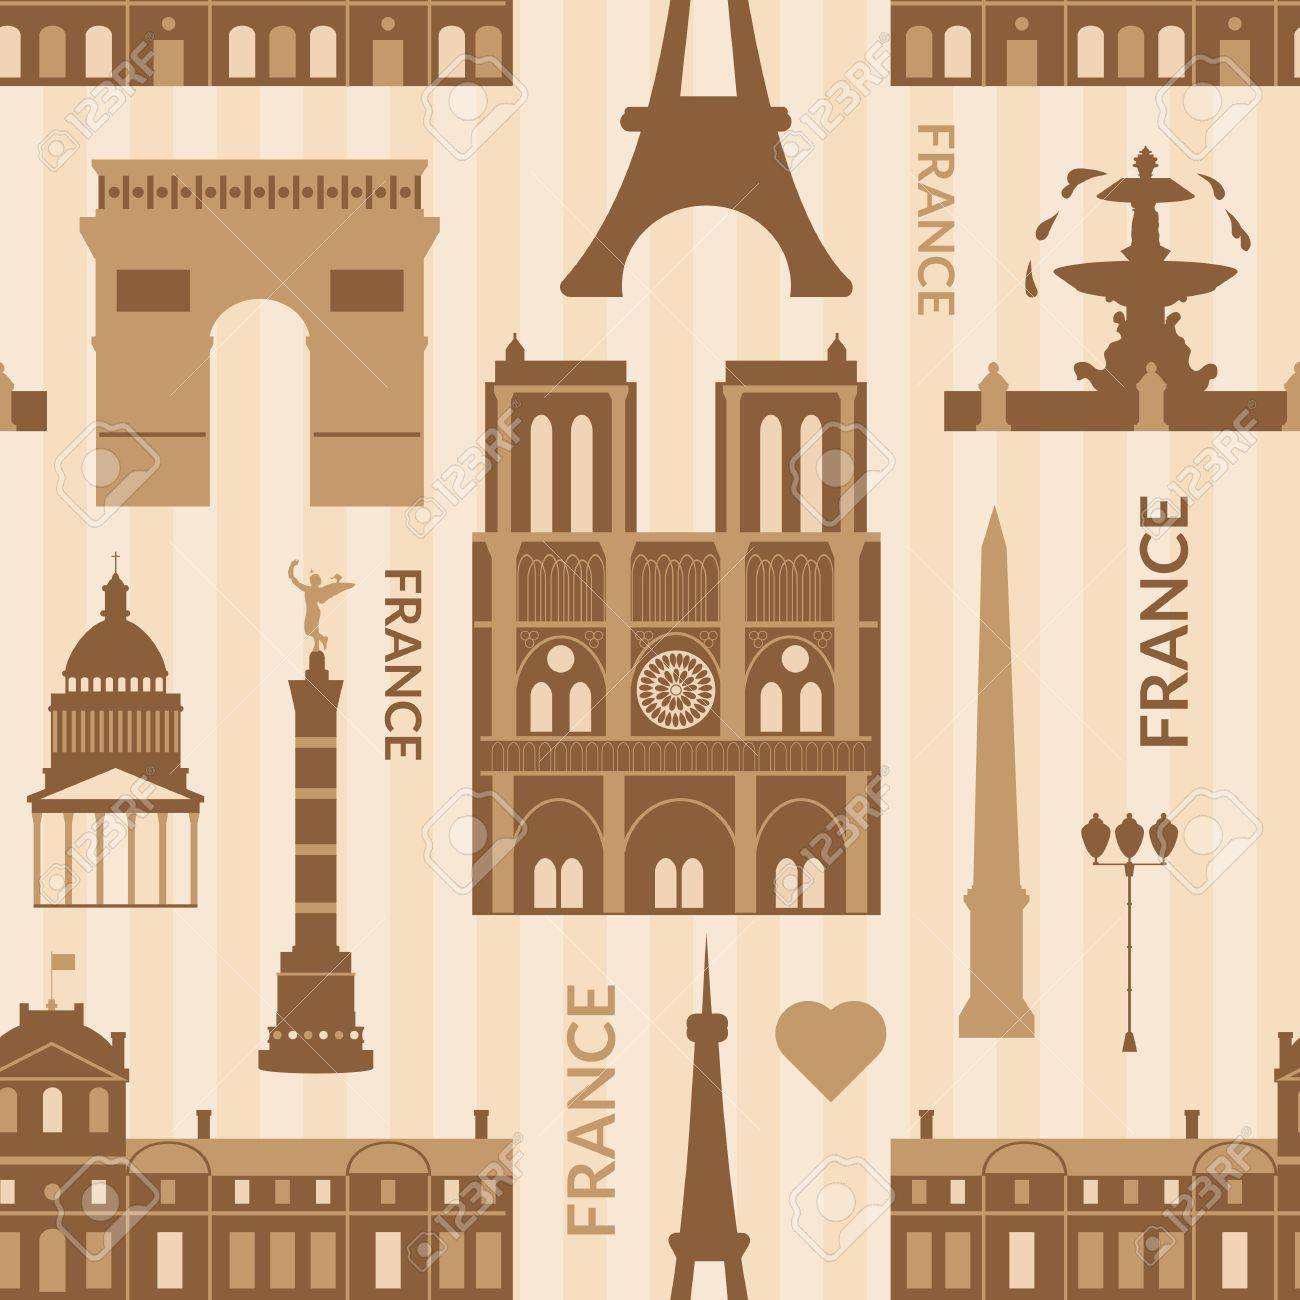 Monuments de Paris, vecteur dessin animé monochrome pattern